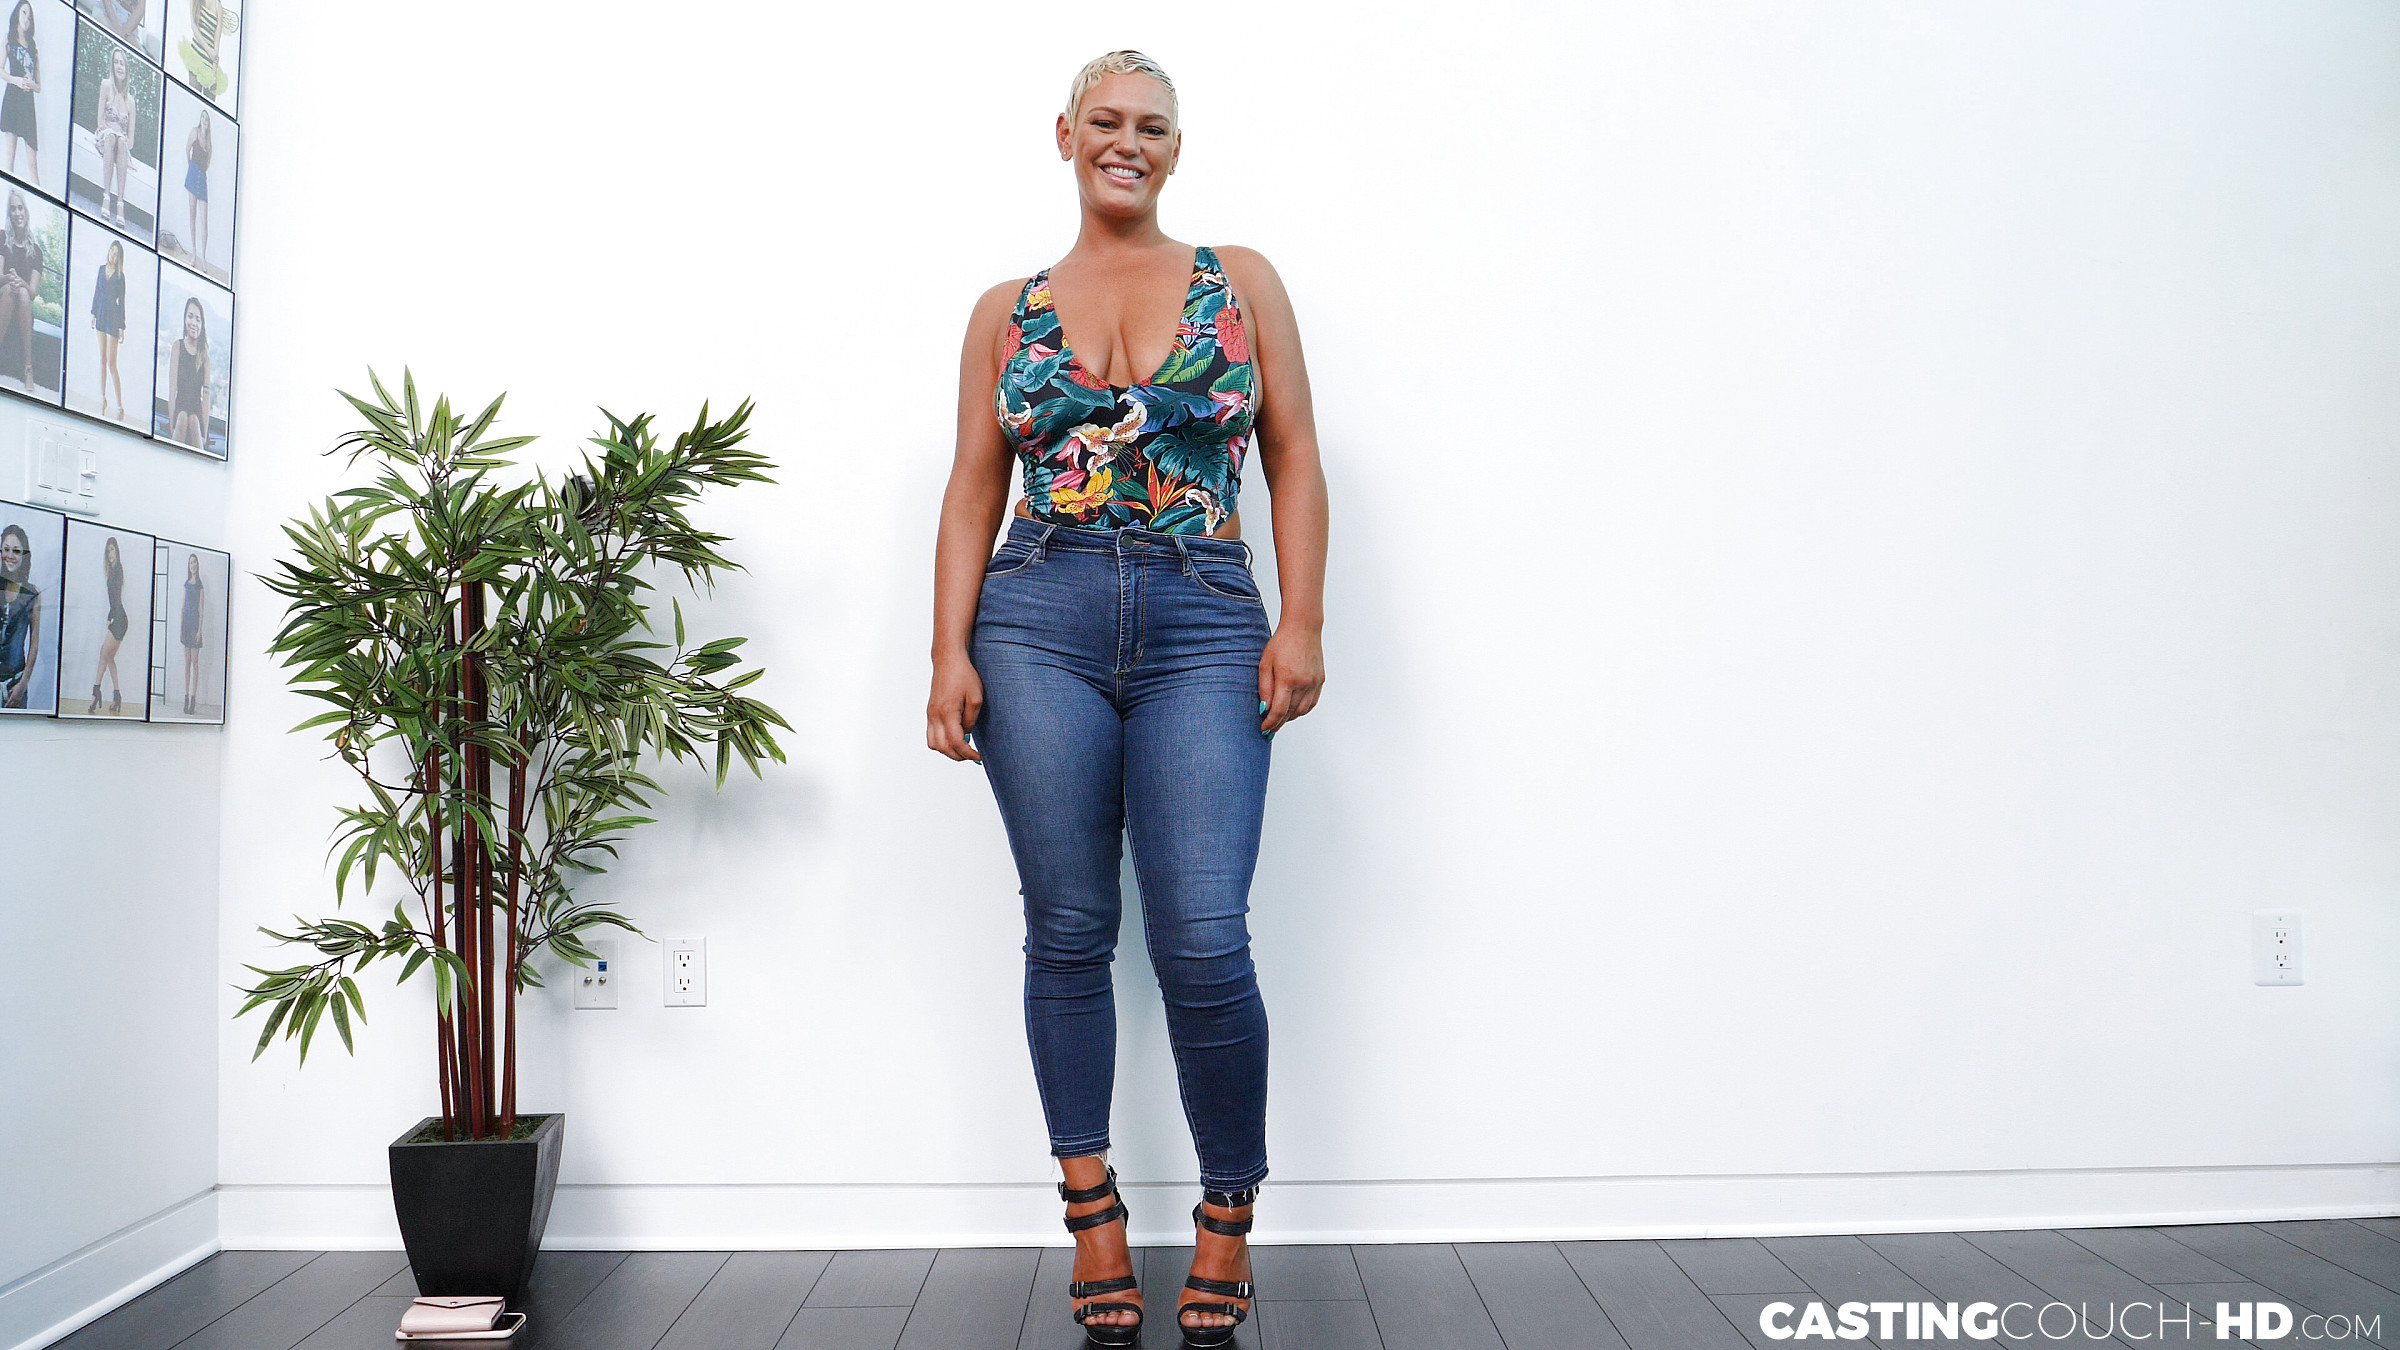 Castingcouch hd hot big ass milf